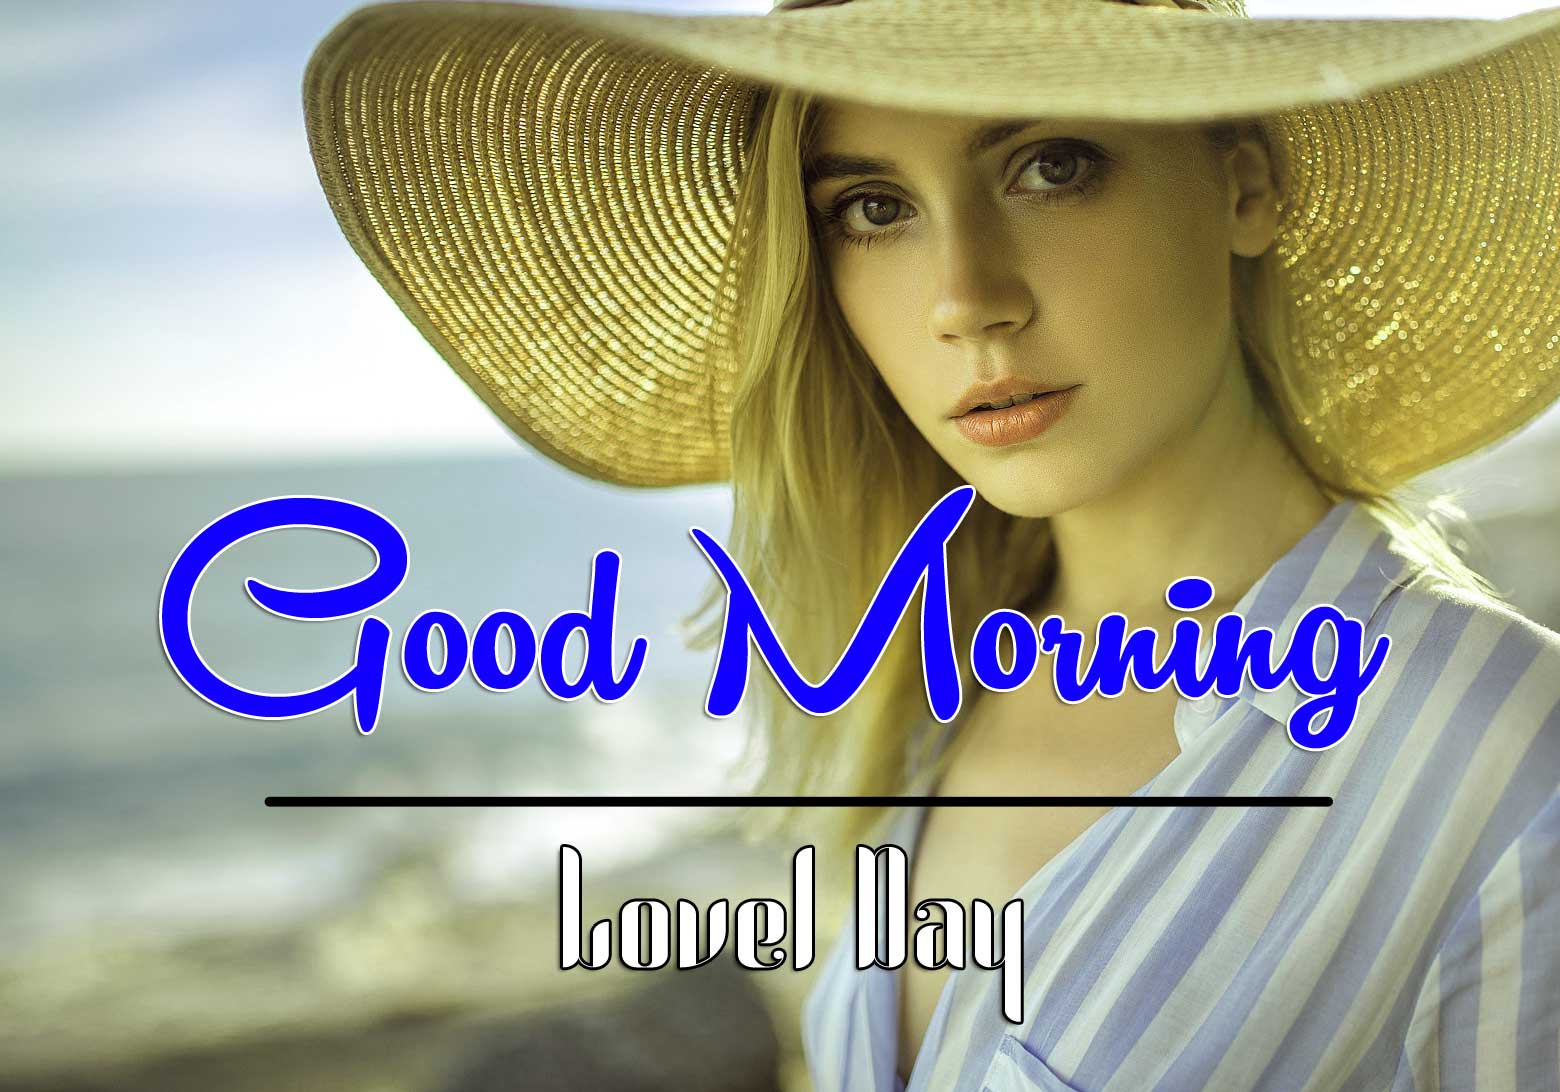 Cute Good Morning Images